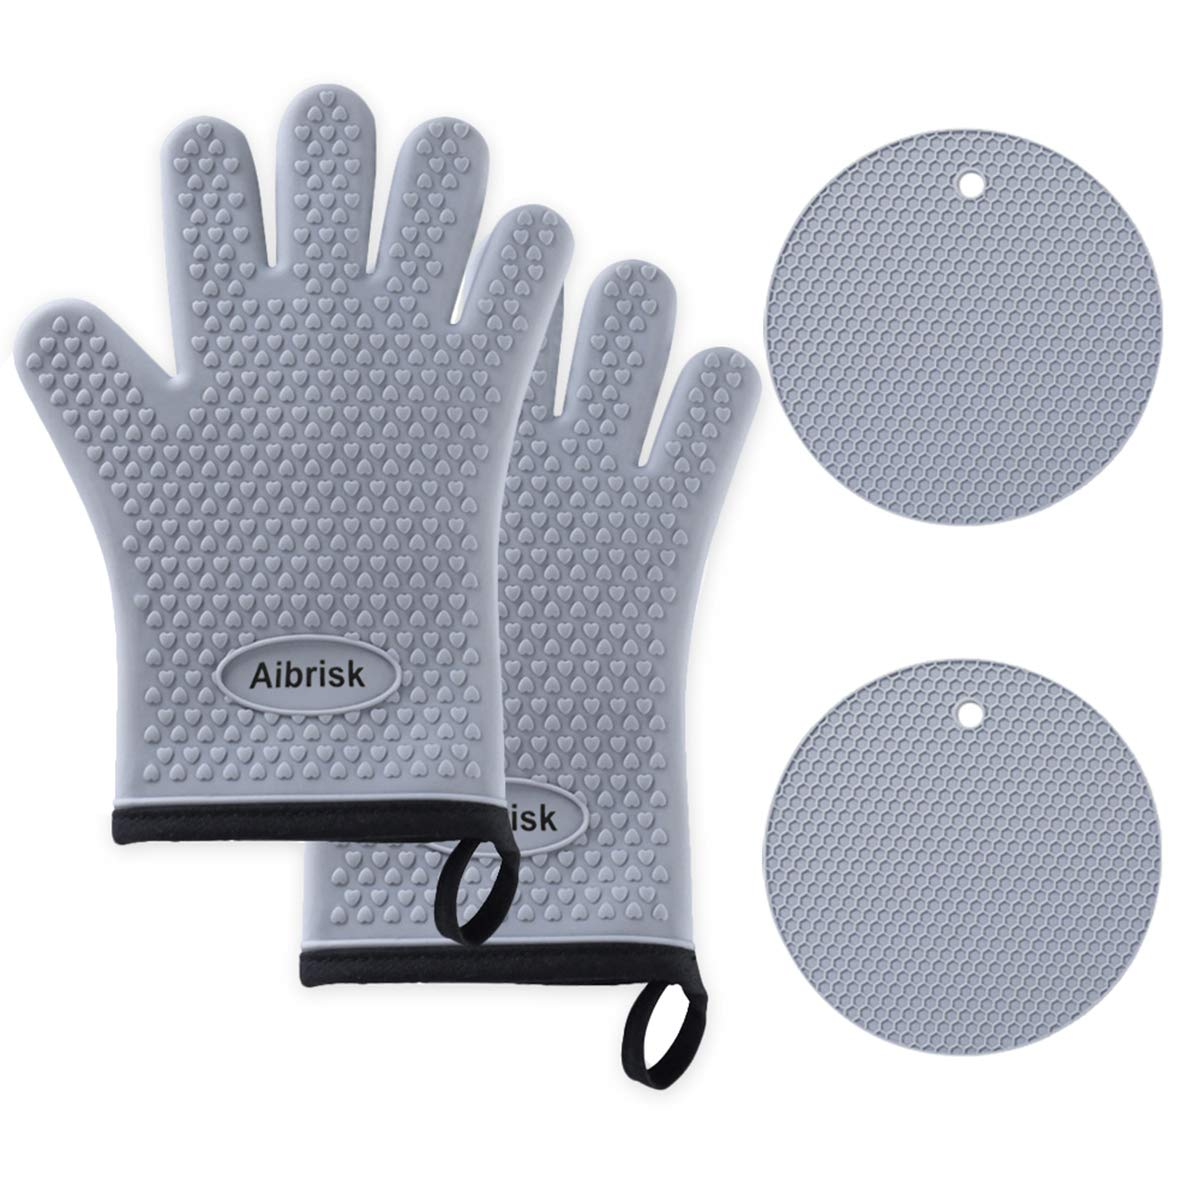 Aibrisk Silicone Oven Mitts and Pot Holders,4PCS Thicken Heat Resistant Flexible Non-Slip Surface Cooking Gloves and Potholders Trivet Mats for Safe Oven BBQ Kitchen Counter Hot Dishes or Pans(Gray)